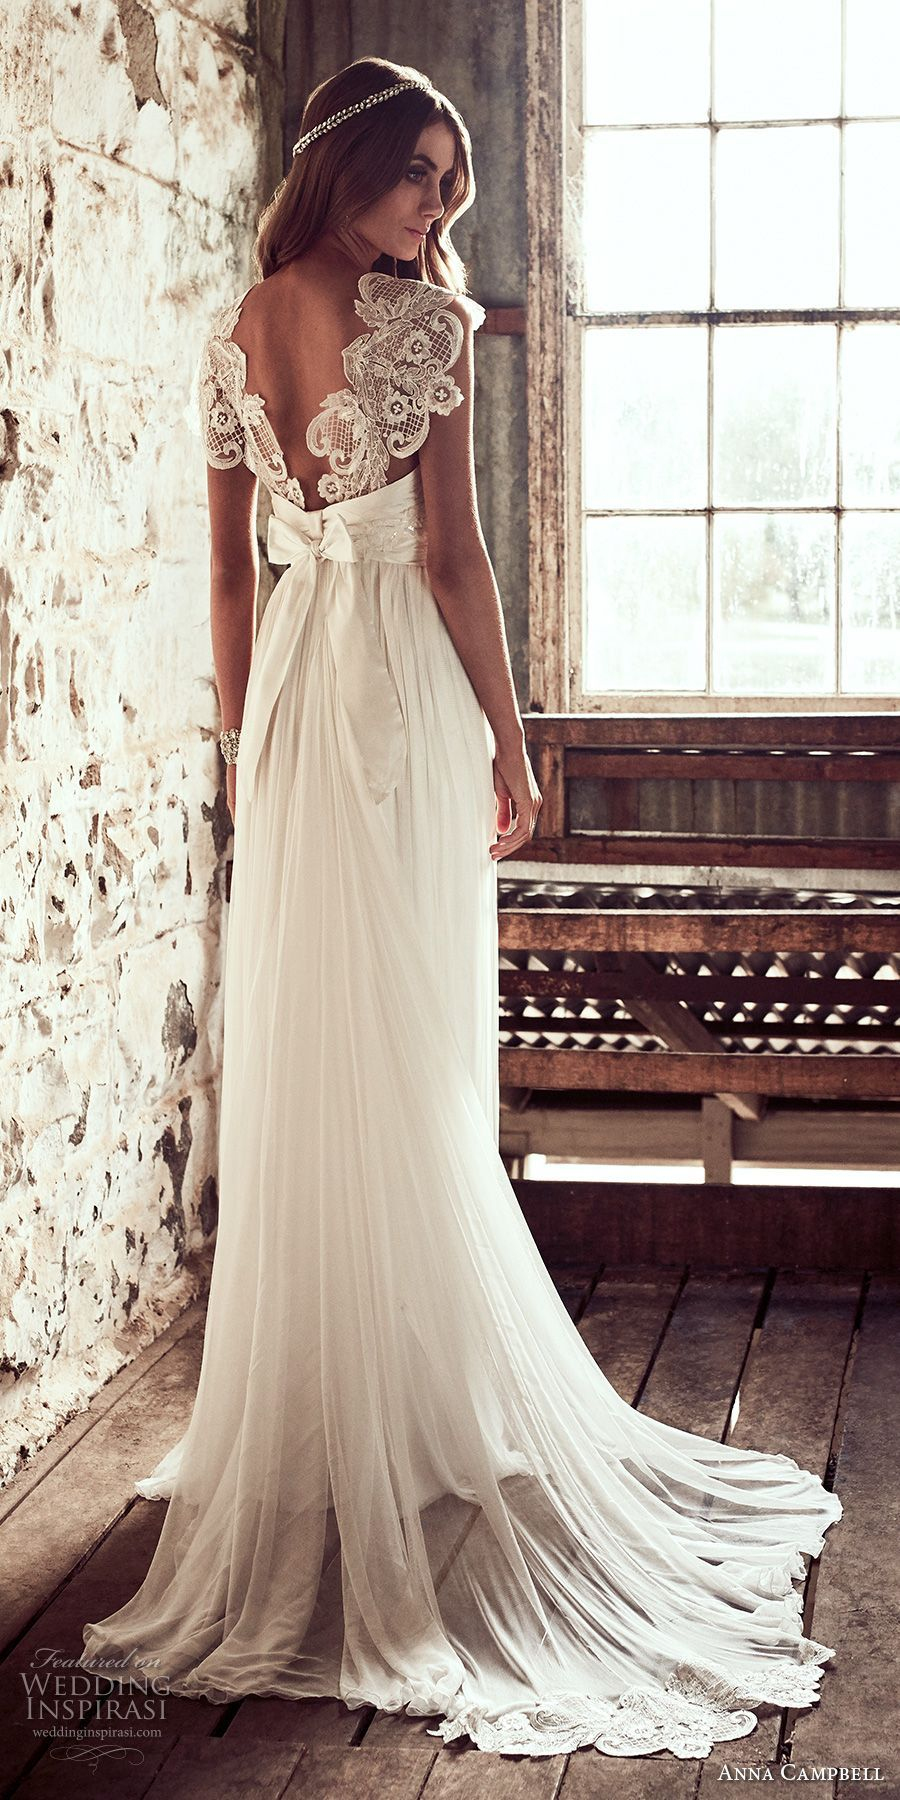 Anna campbell luxury wedding gown glamourously embellished bridal